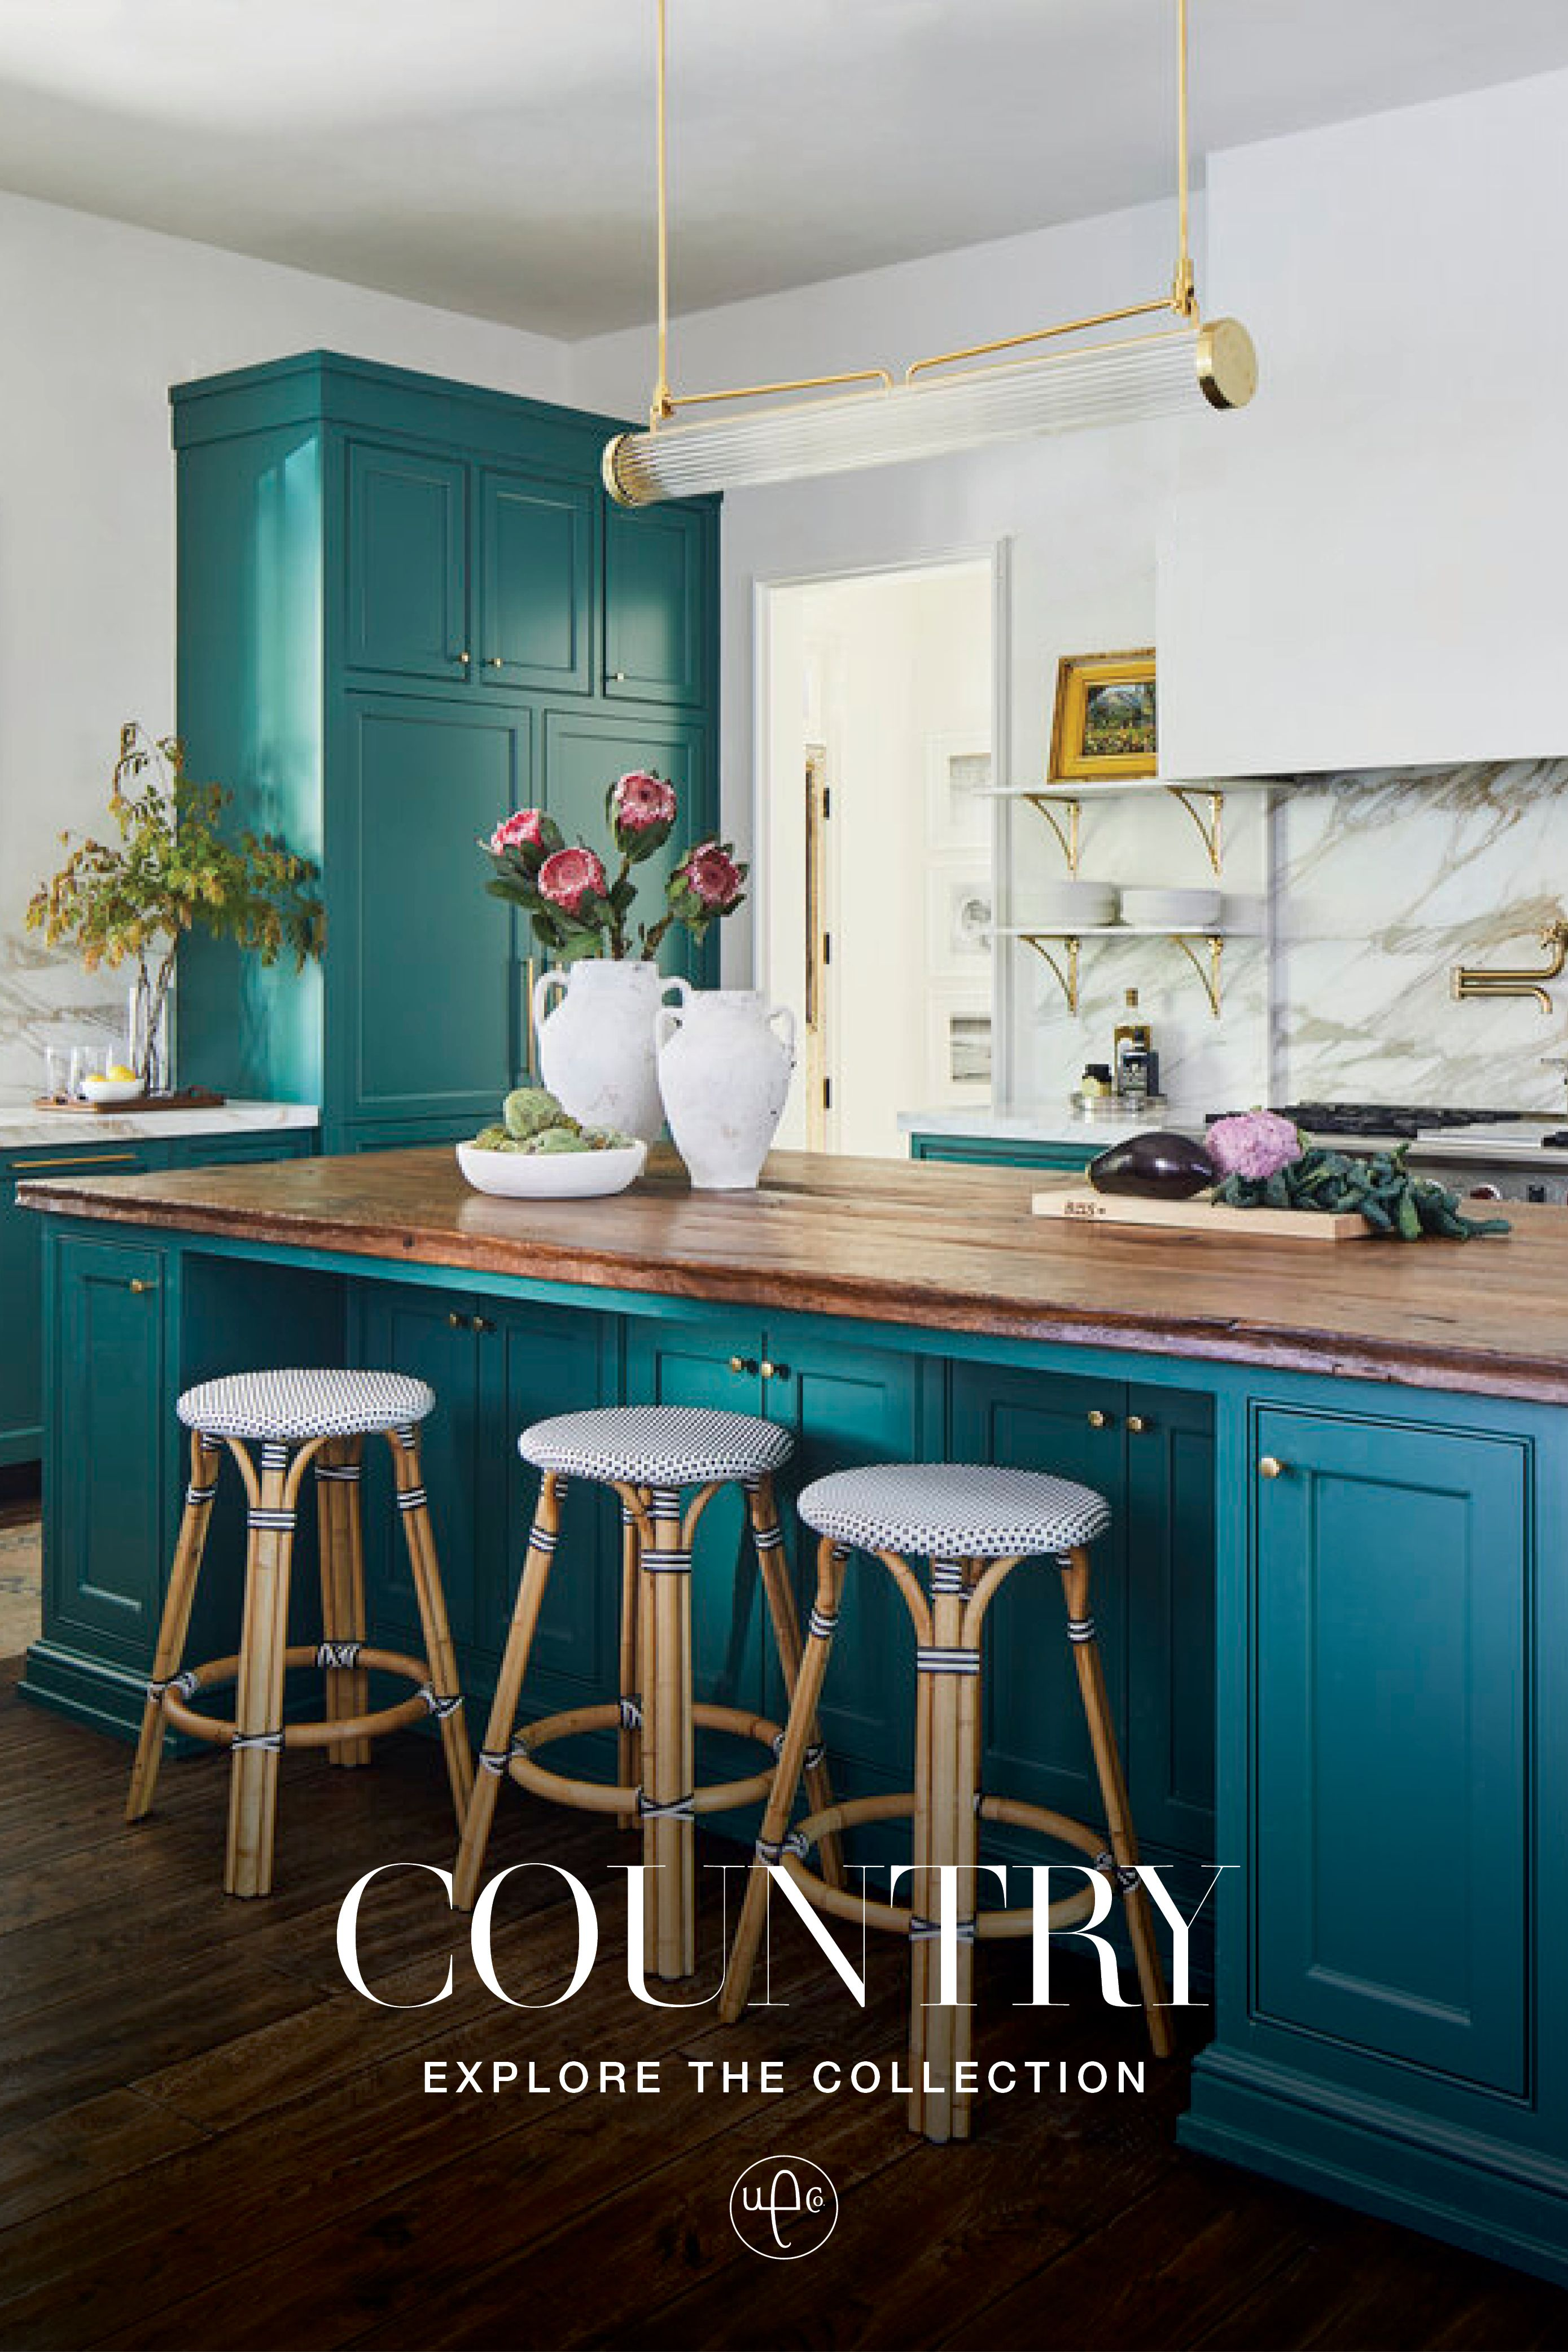 Country Idyll In 2020 Teal Kitchen Cabinets Eclectic Kitchen Kitchen Cabinet Colors